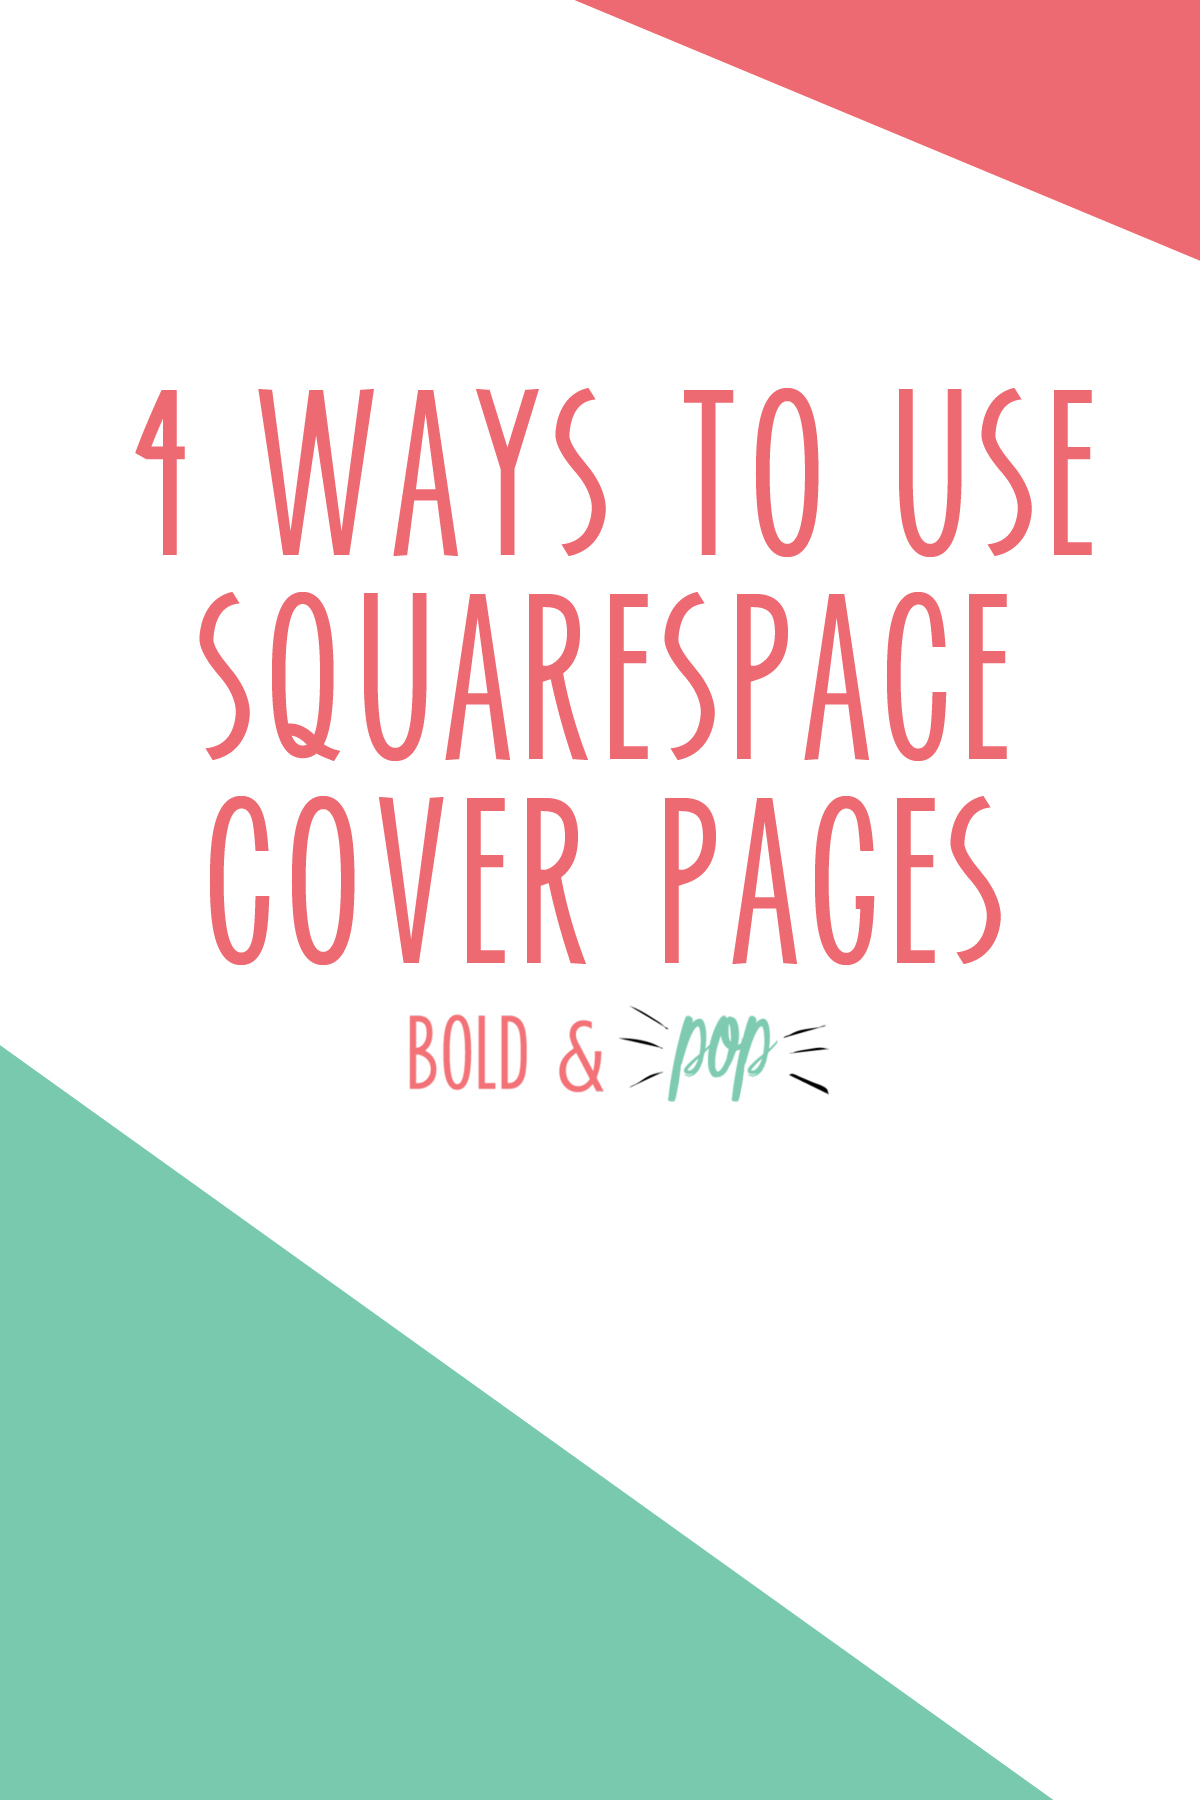 Bold & Pop : 4 Ways to Use Squarespace Cover Pages